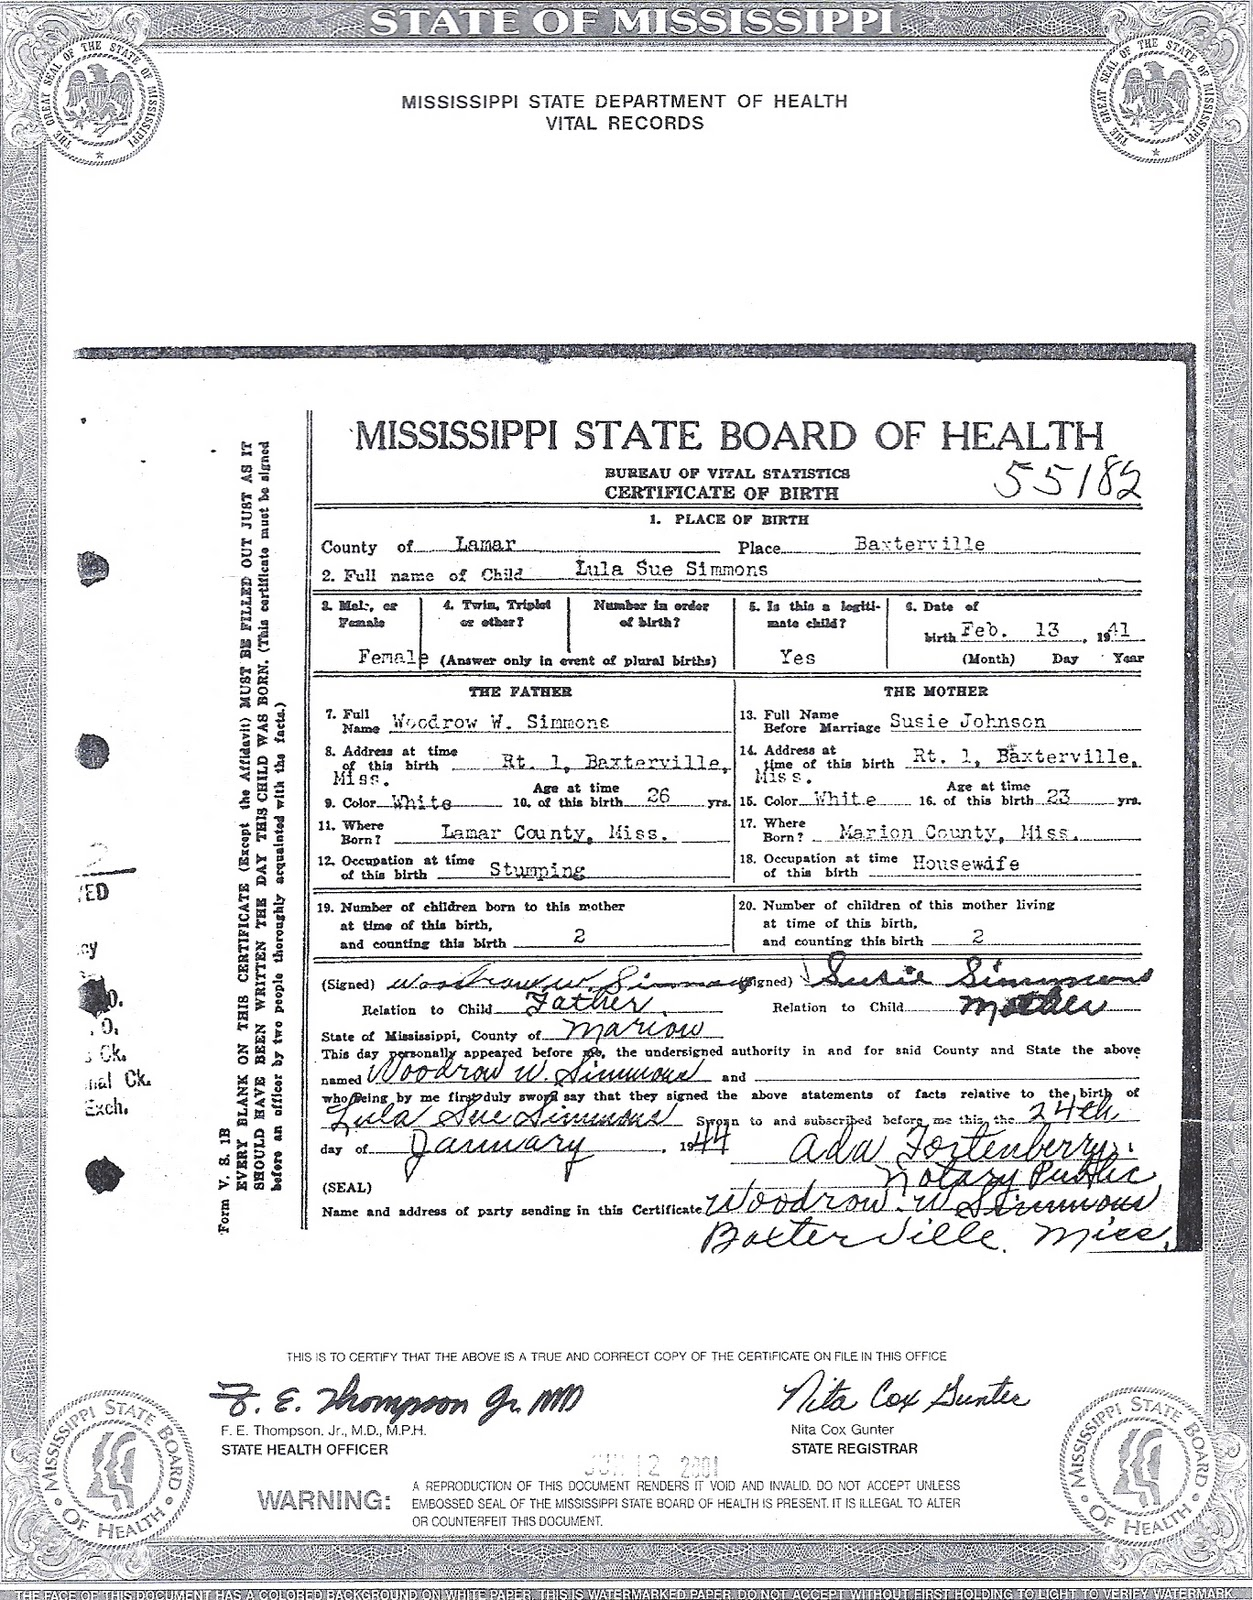 NEW APPLICATION FOR BIRTH CERTIFICATE MISSISSIPPI